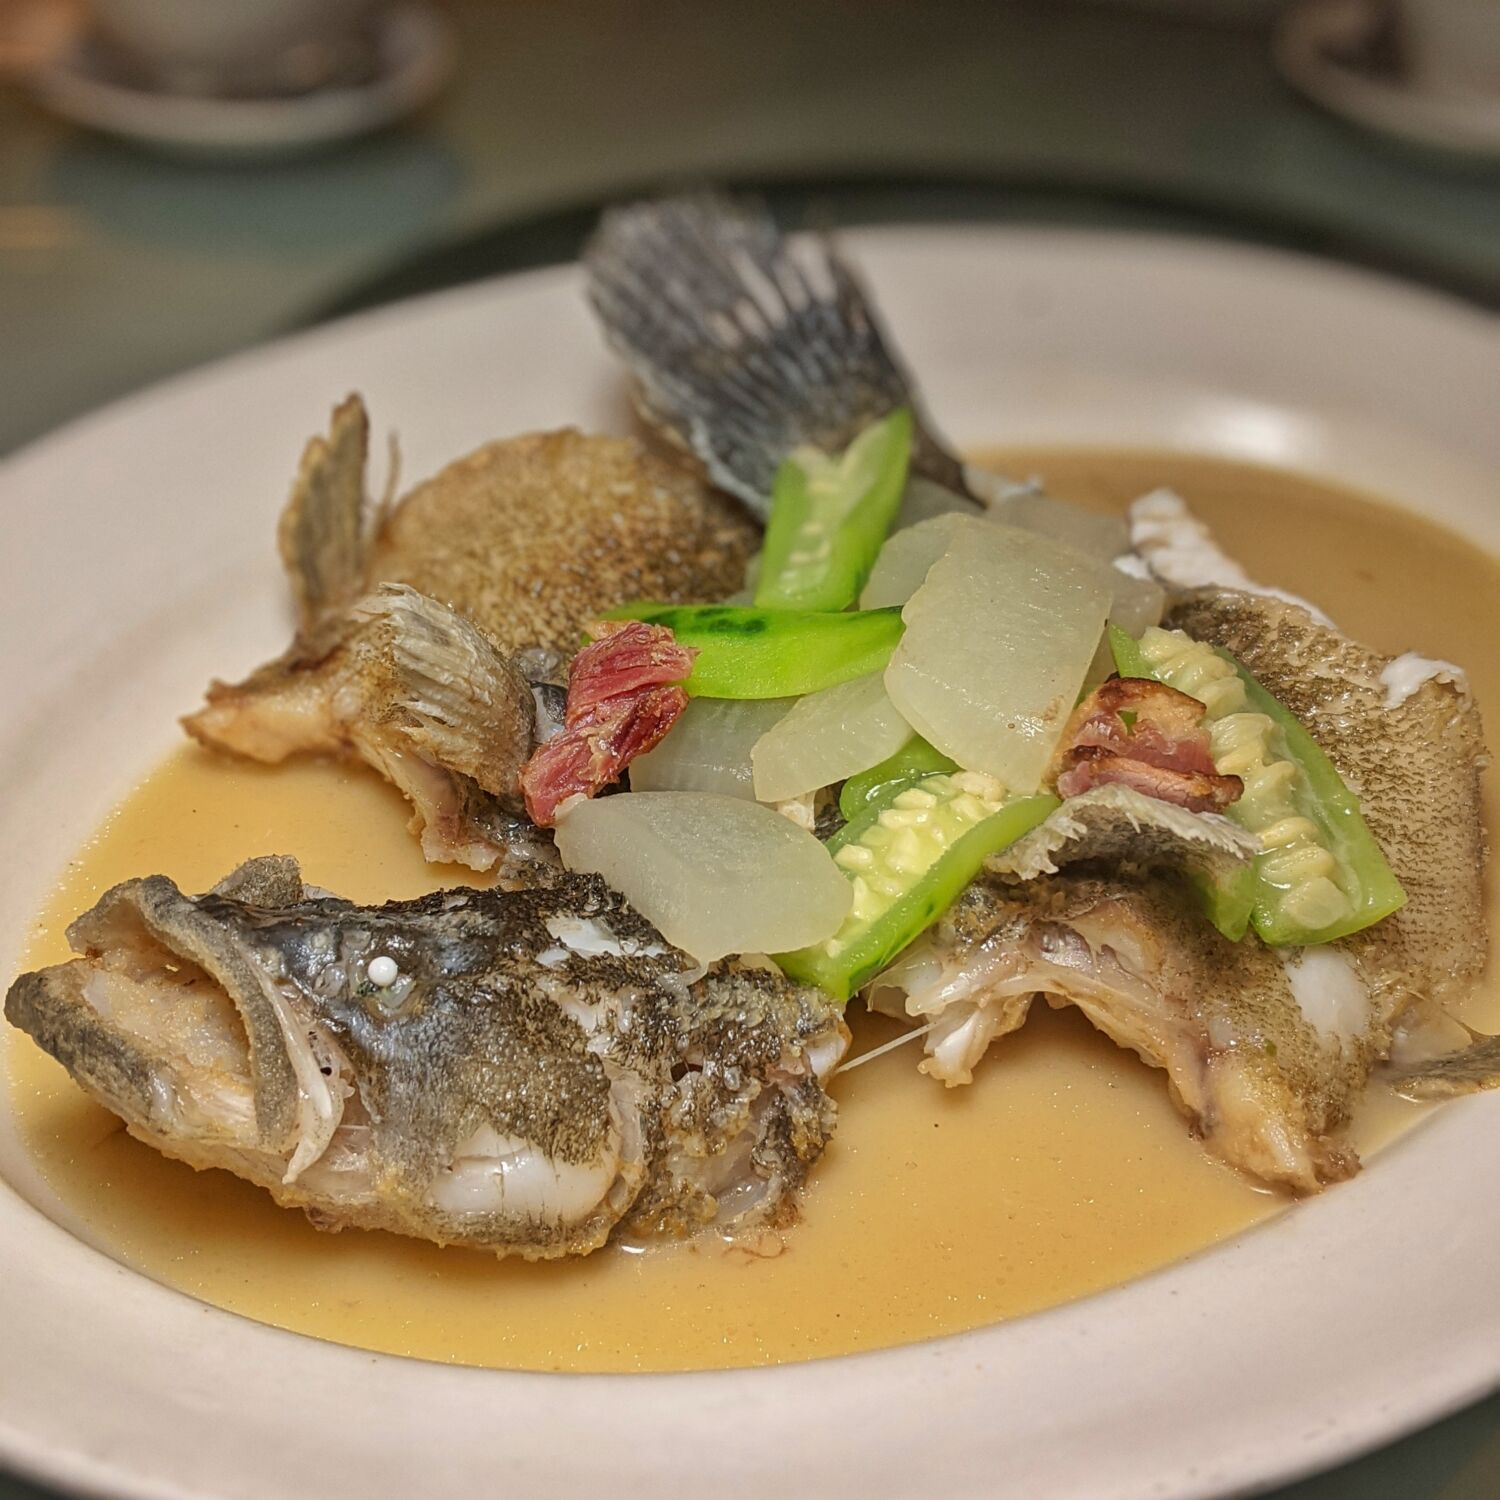 Yan Cantonese Cuisine National Gallery Singapore Poached Star Grouper with Carrot and Luffa